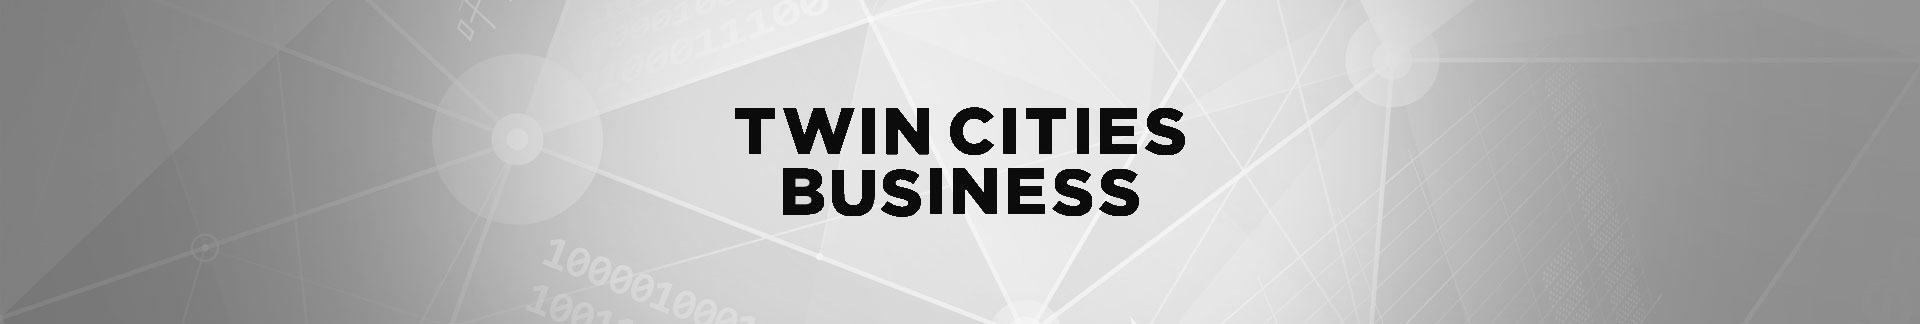 Twin Cities Business news banner